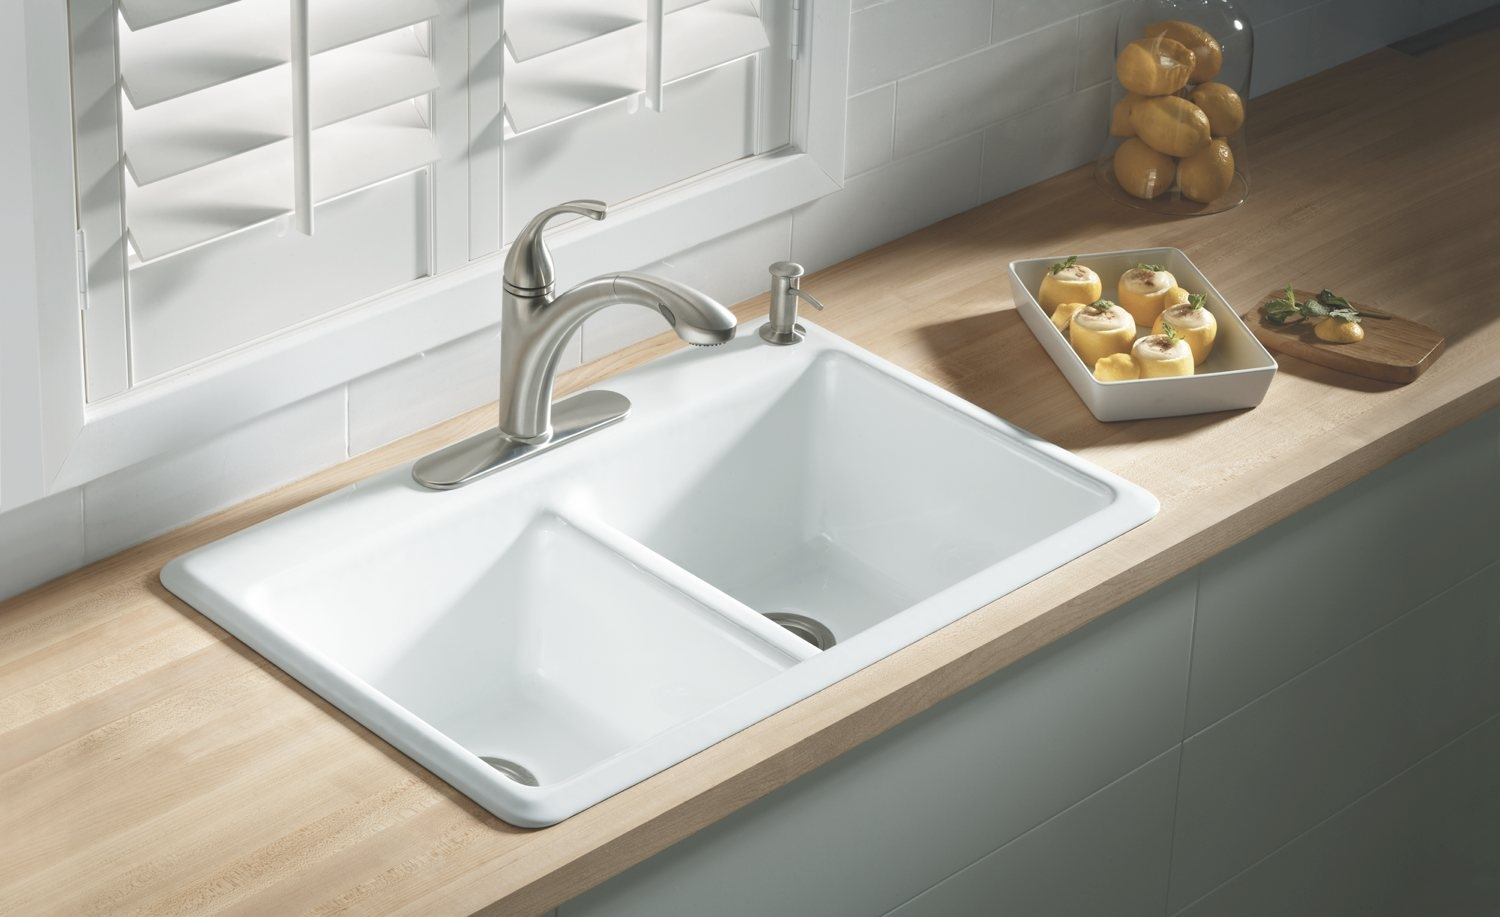 Ideas, best faucet for small kitchen sink best faucet for small kitchen sink small kitchen sinks ideas amazing home decor 1500 x 917  .